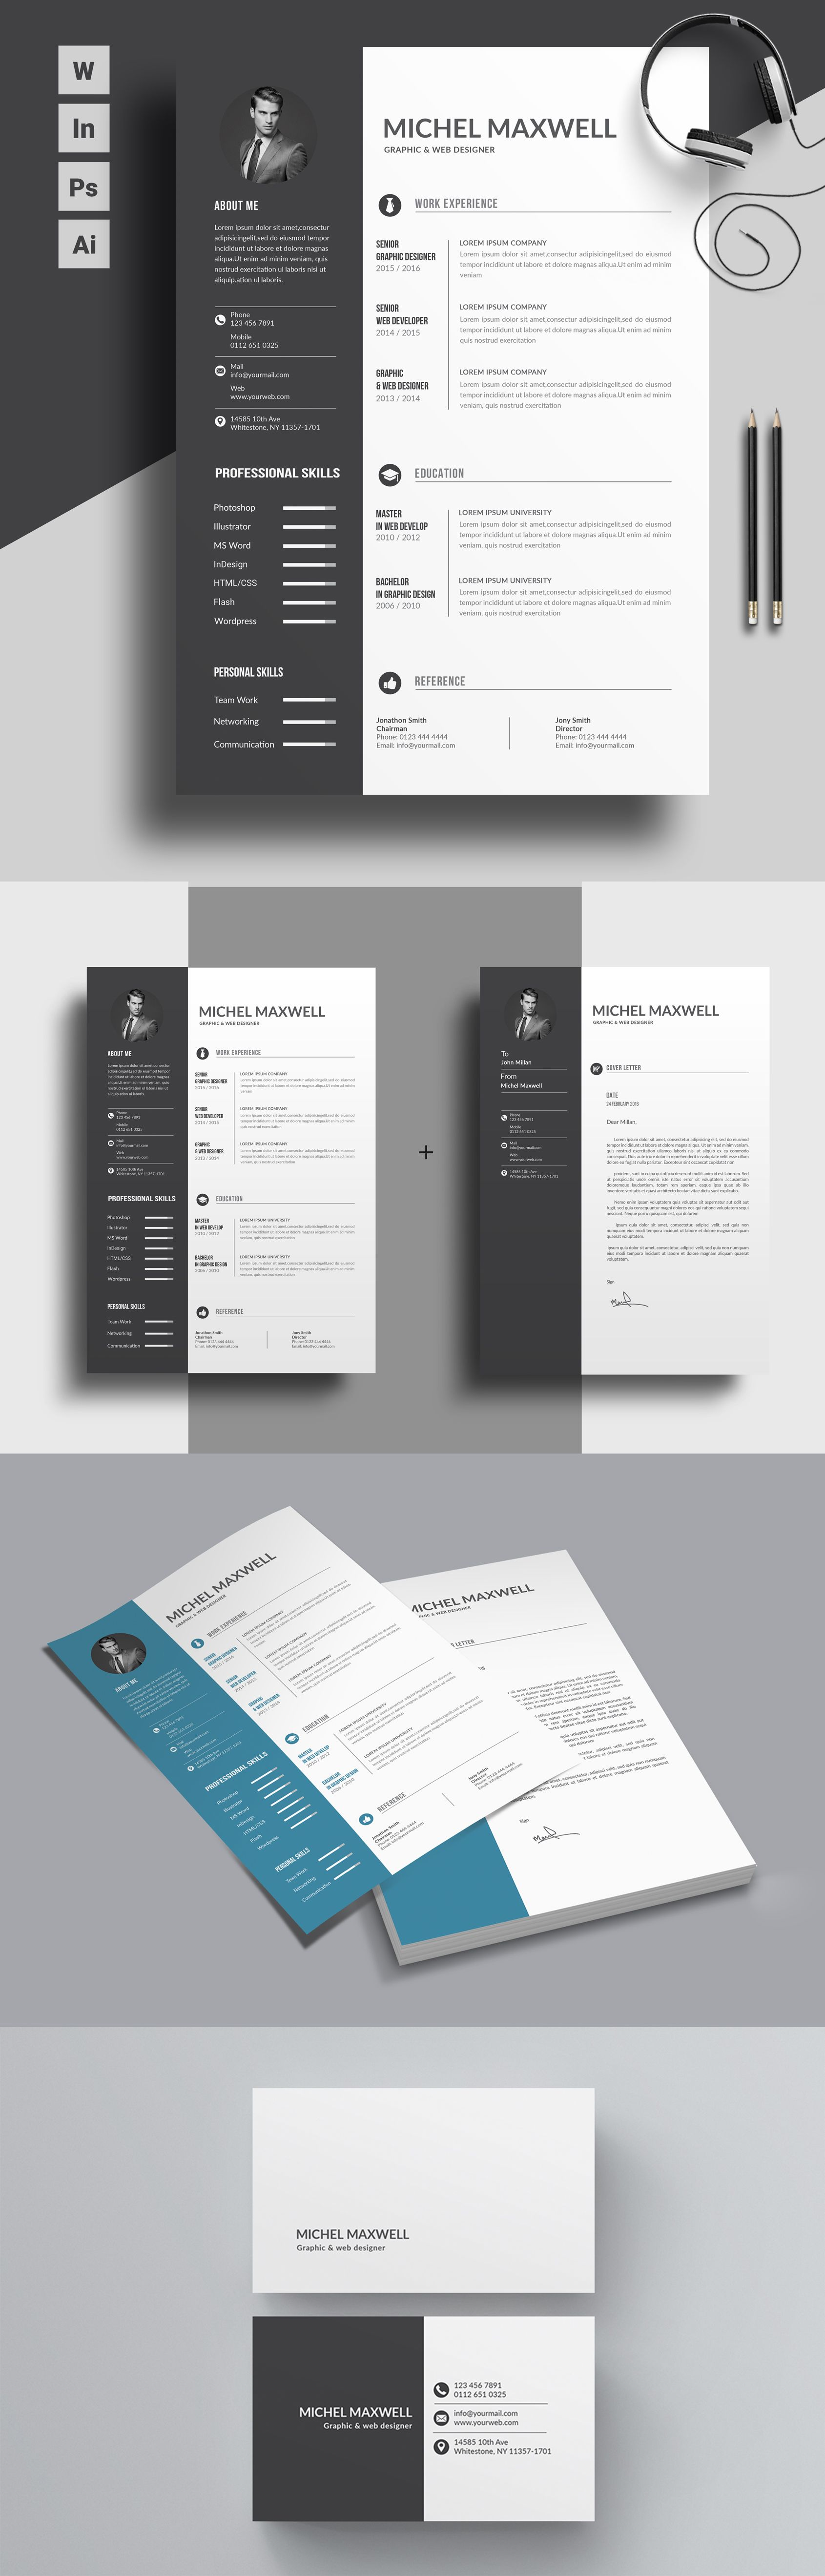 Trendy Resume Format For Professionals Suitable For All Sort Of